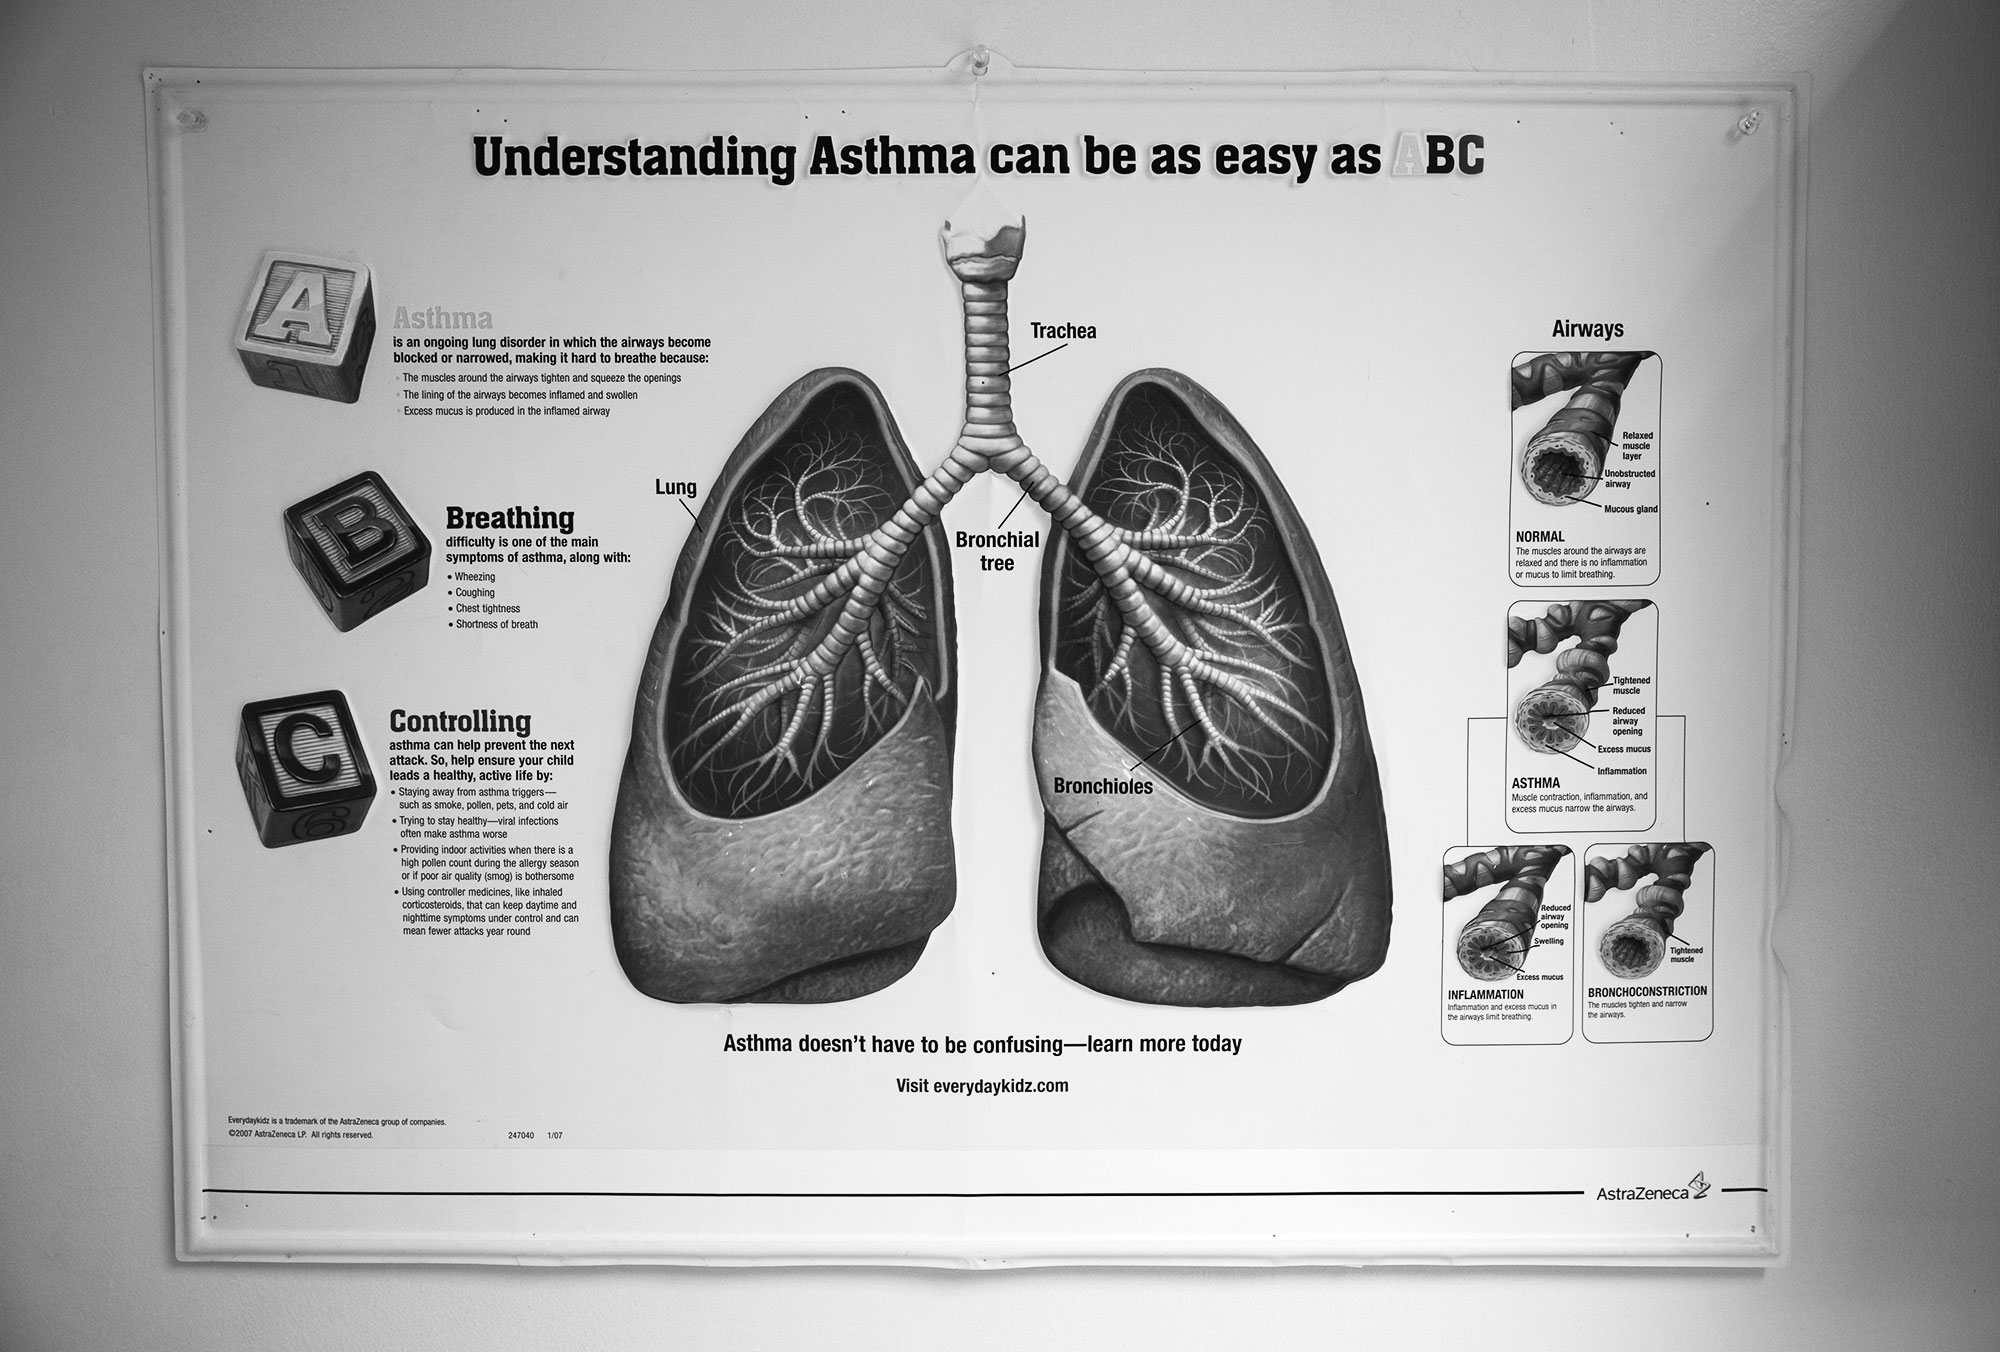 A poster hanging in Dr. Mohammad's office is used to educate patients on the physiology of asthma: what it is, how the bronchioles constrict, how inflammation and phlegm leading to persistent cough and wheezing. With this education parents and children understand why they should take their medication daily to prevent asthma symptoms.